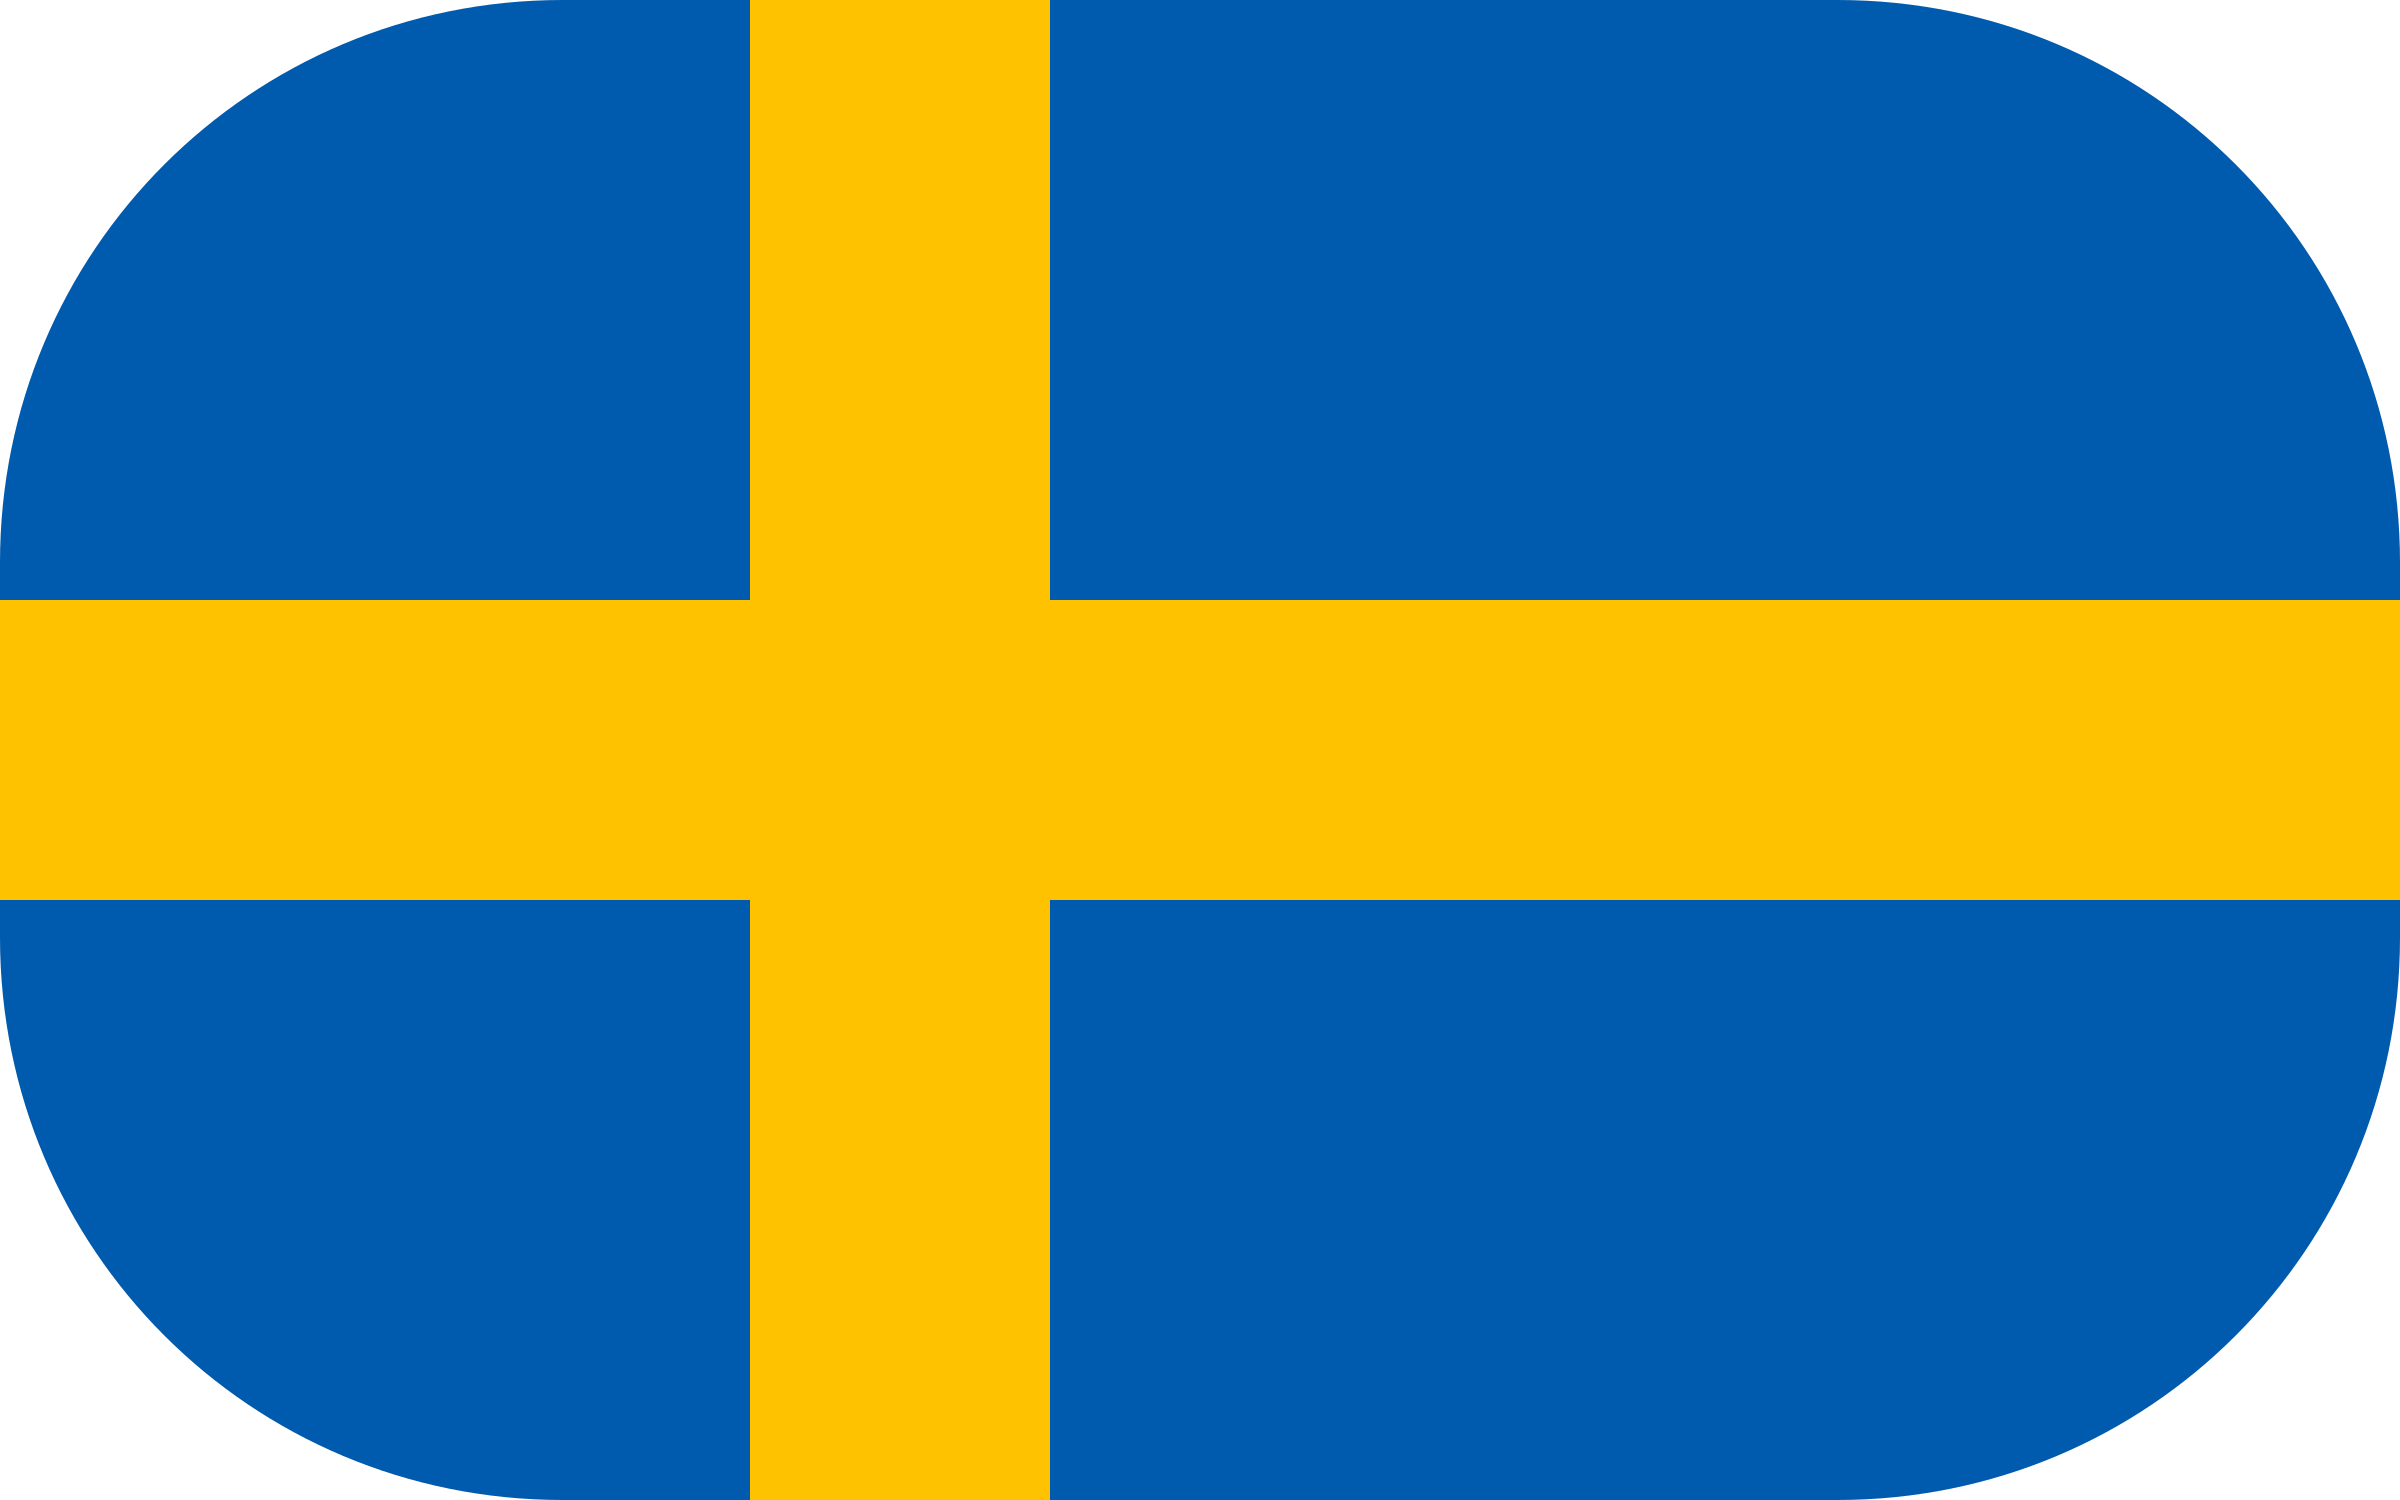 Swedish Flag by gadgetscode